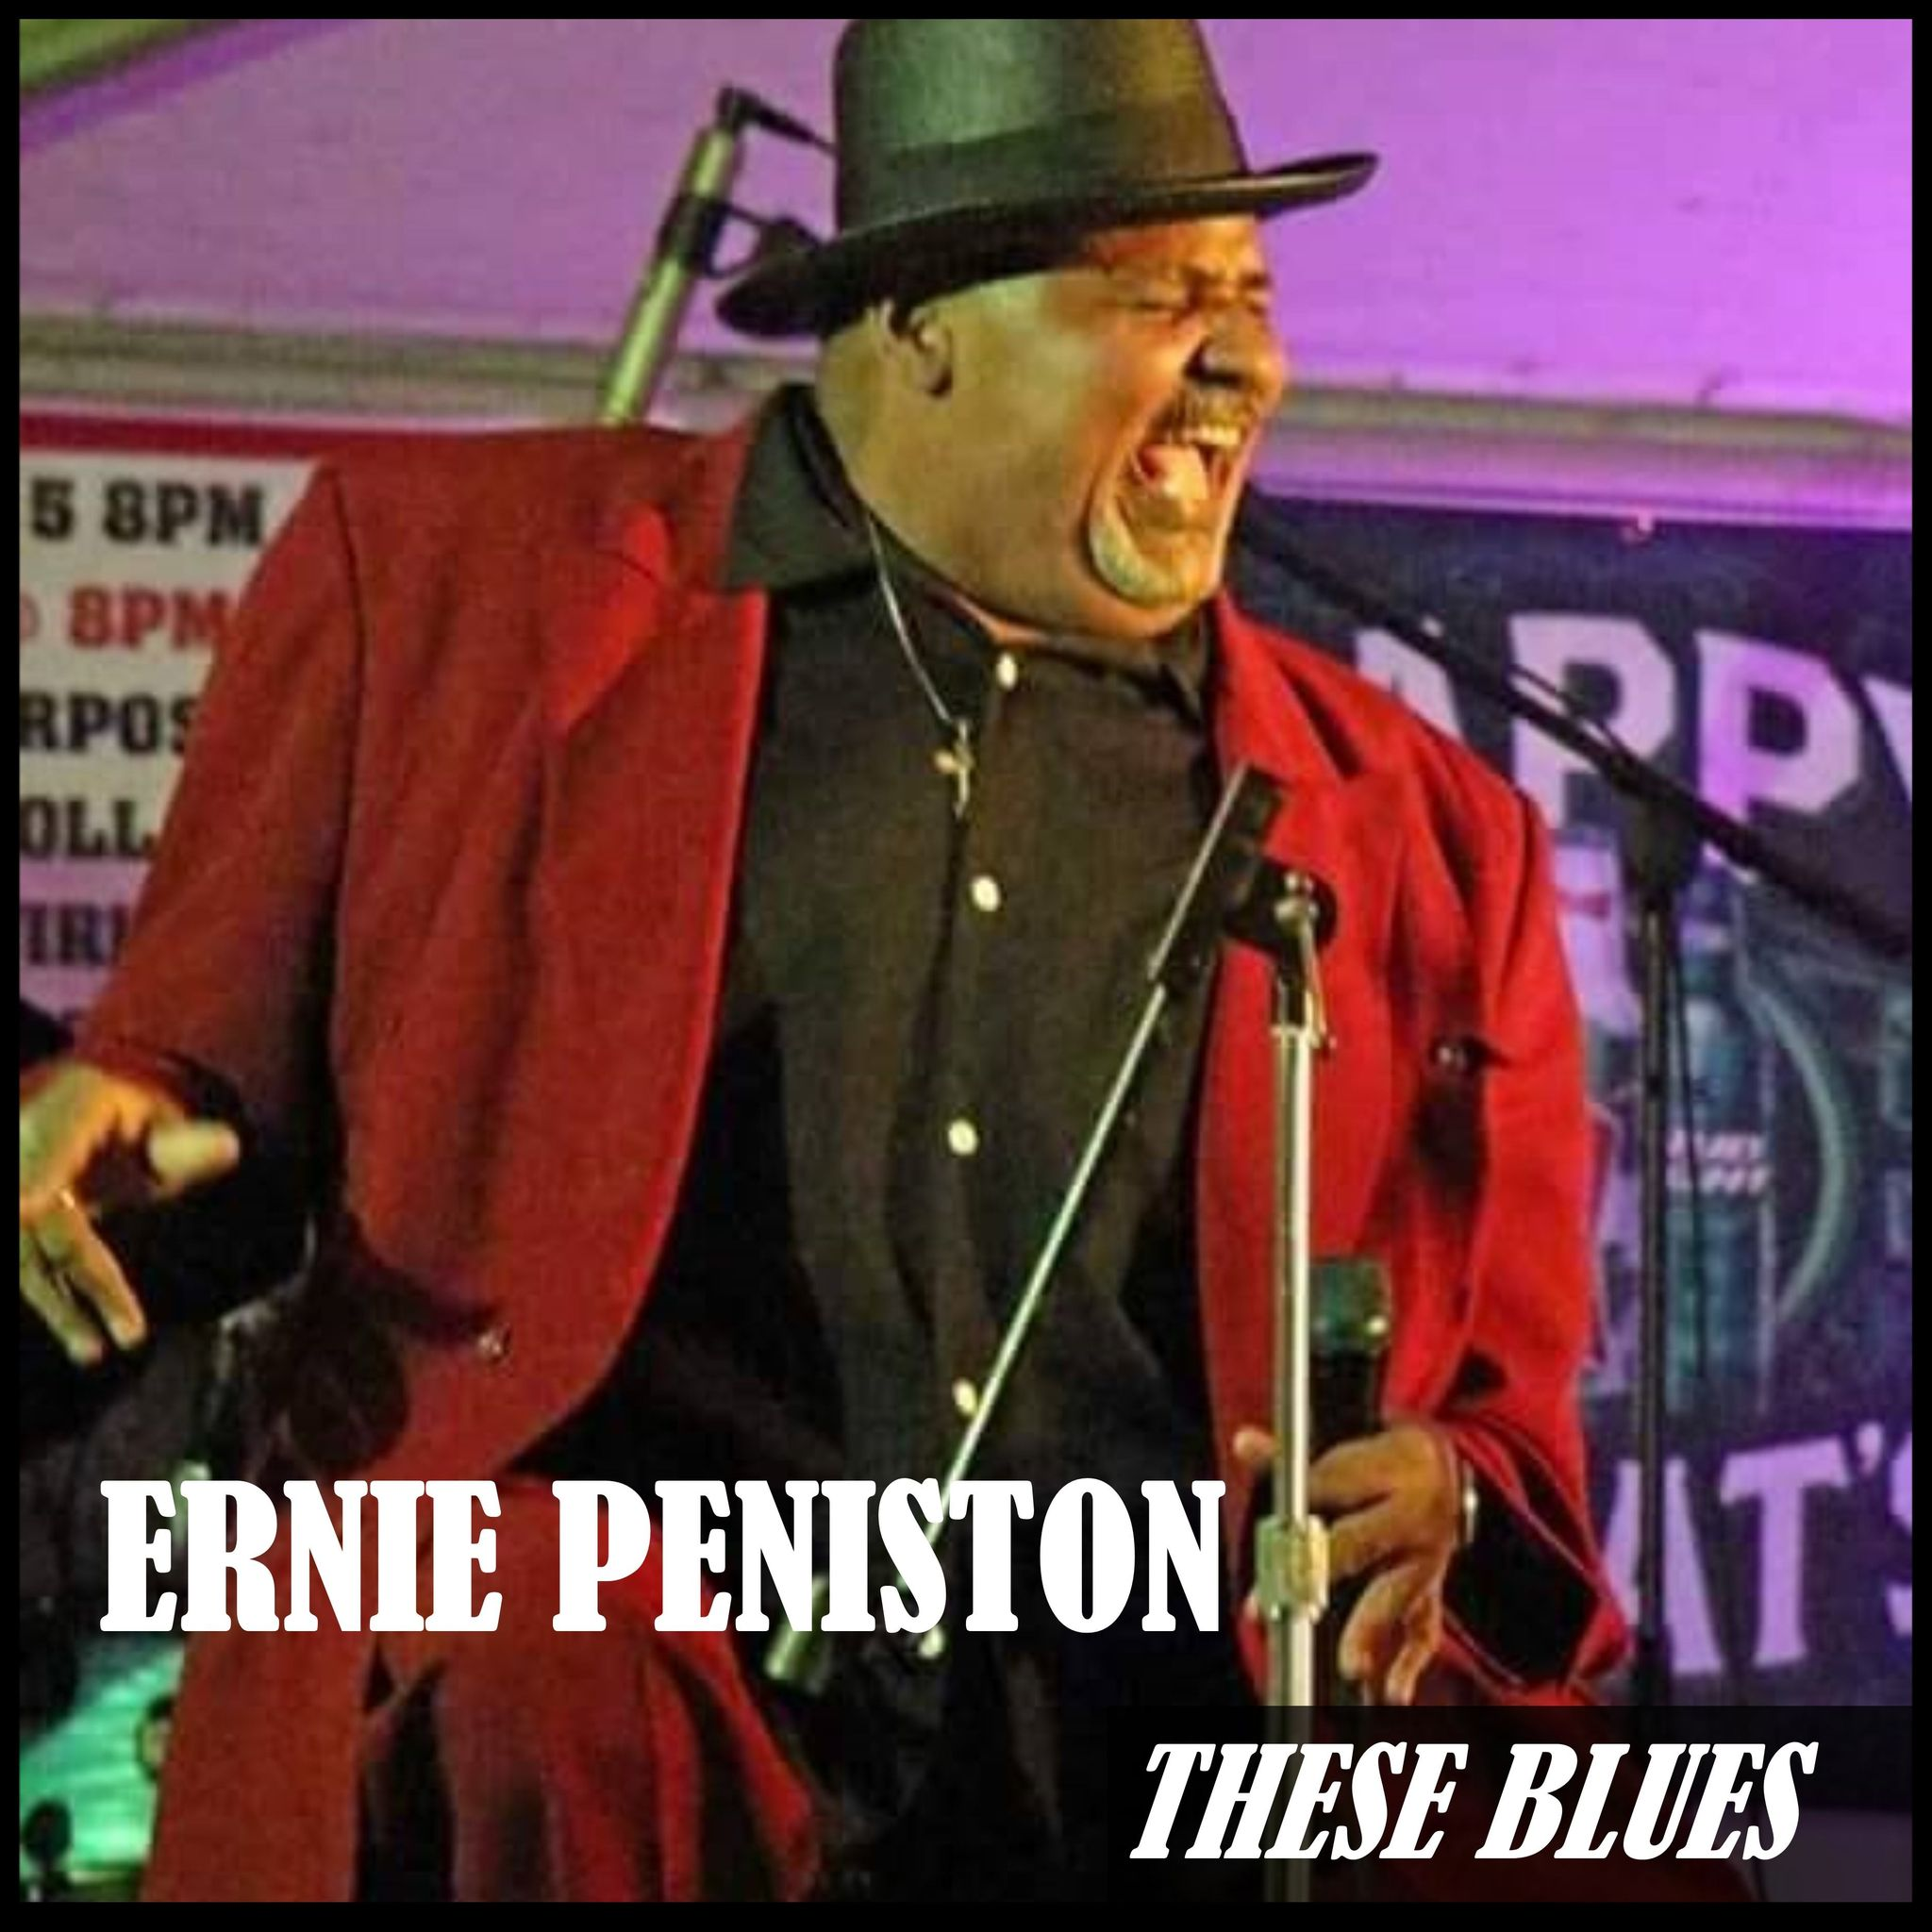 """New Album """"These Blues"""" from Ernie Peniston is a Funky Blues Masterpiece & Shares a Black Iowegian's Perspective on Life and Love"""